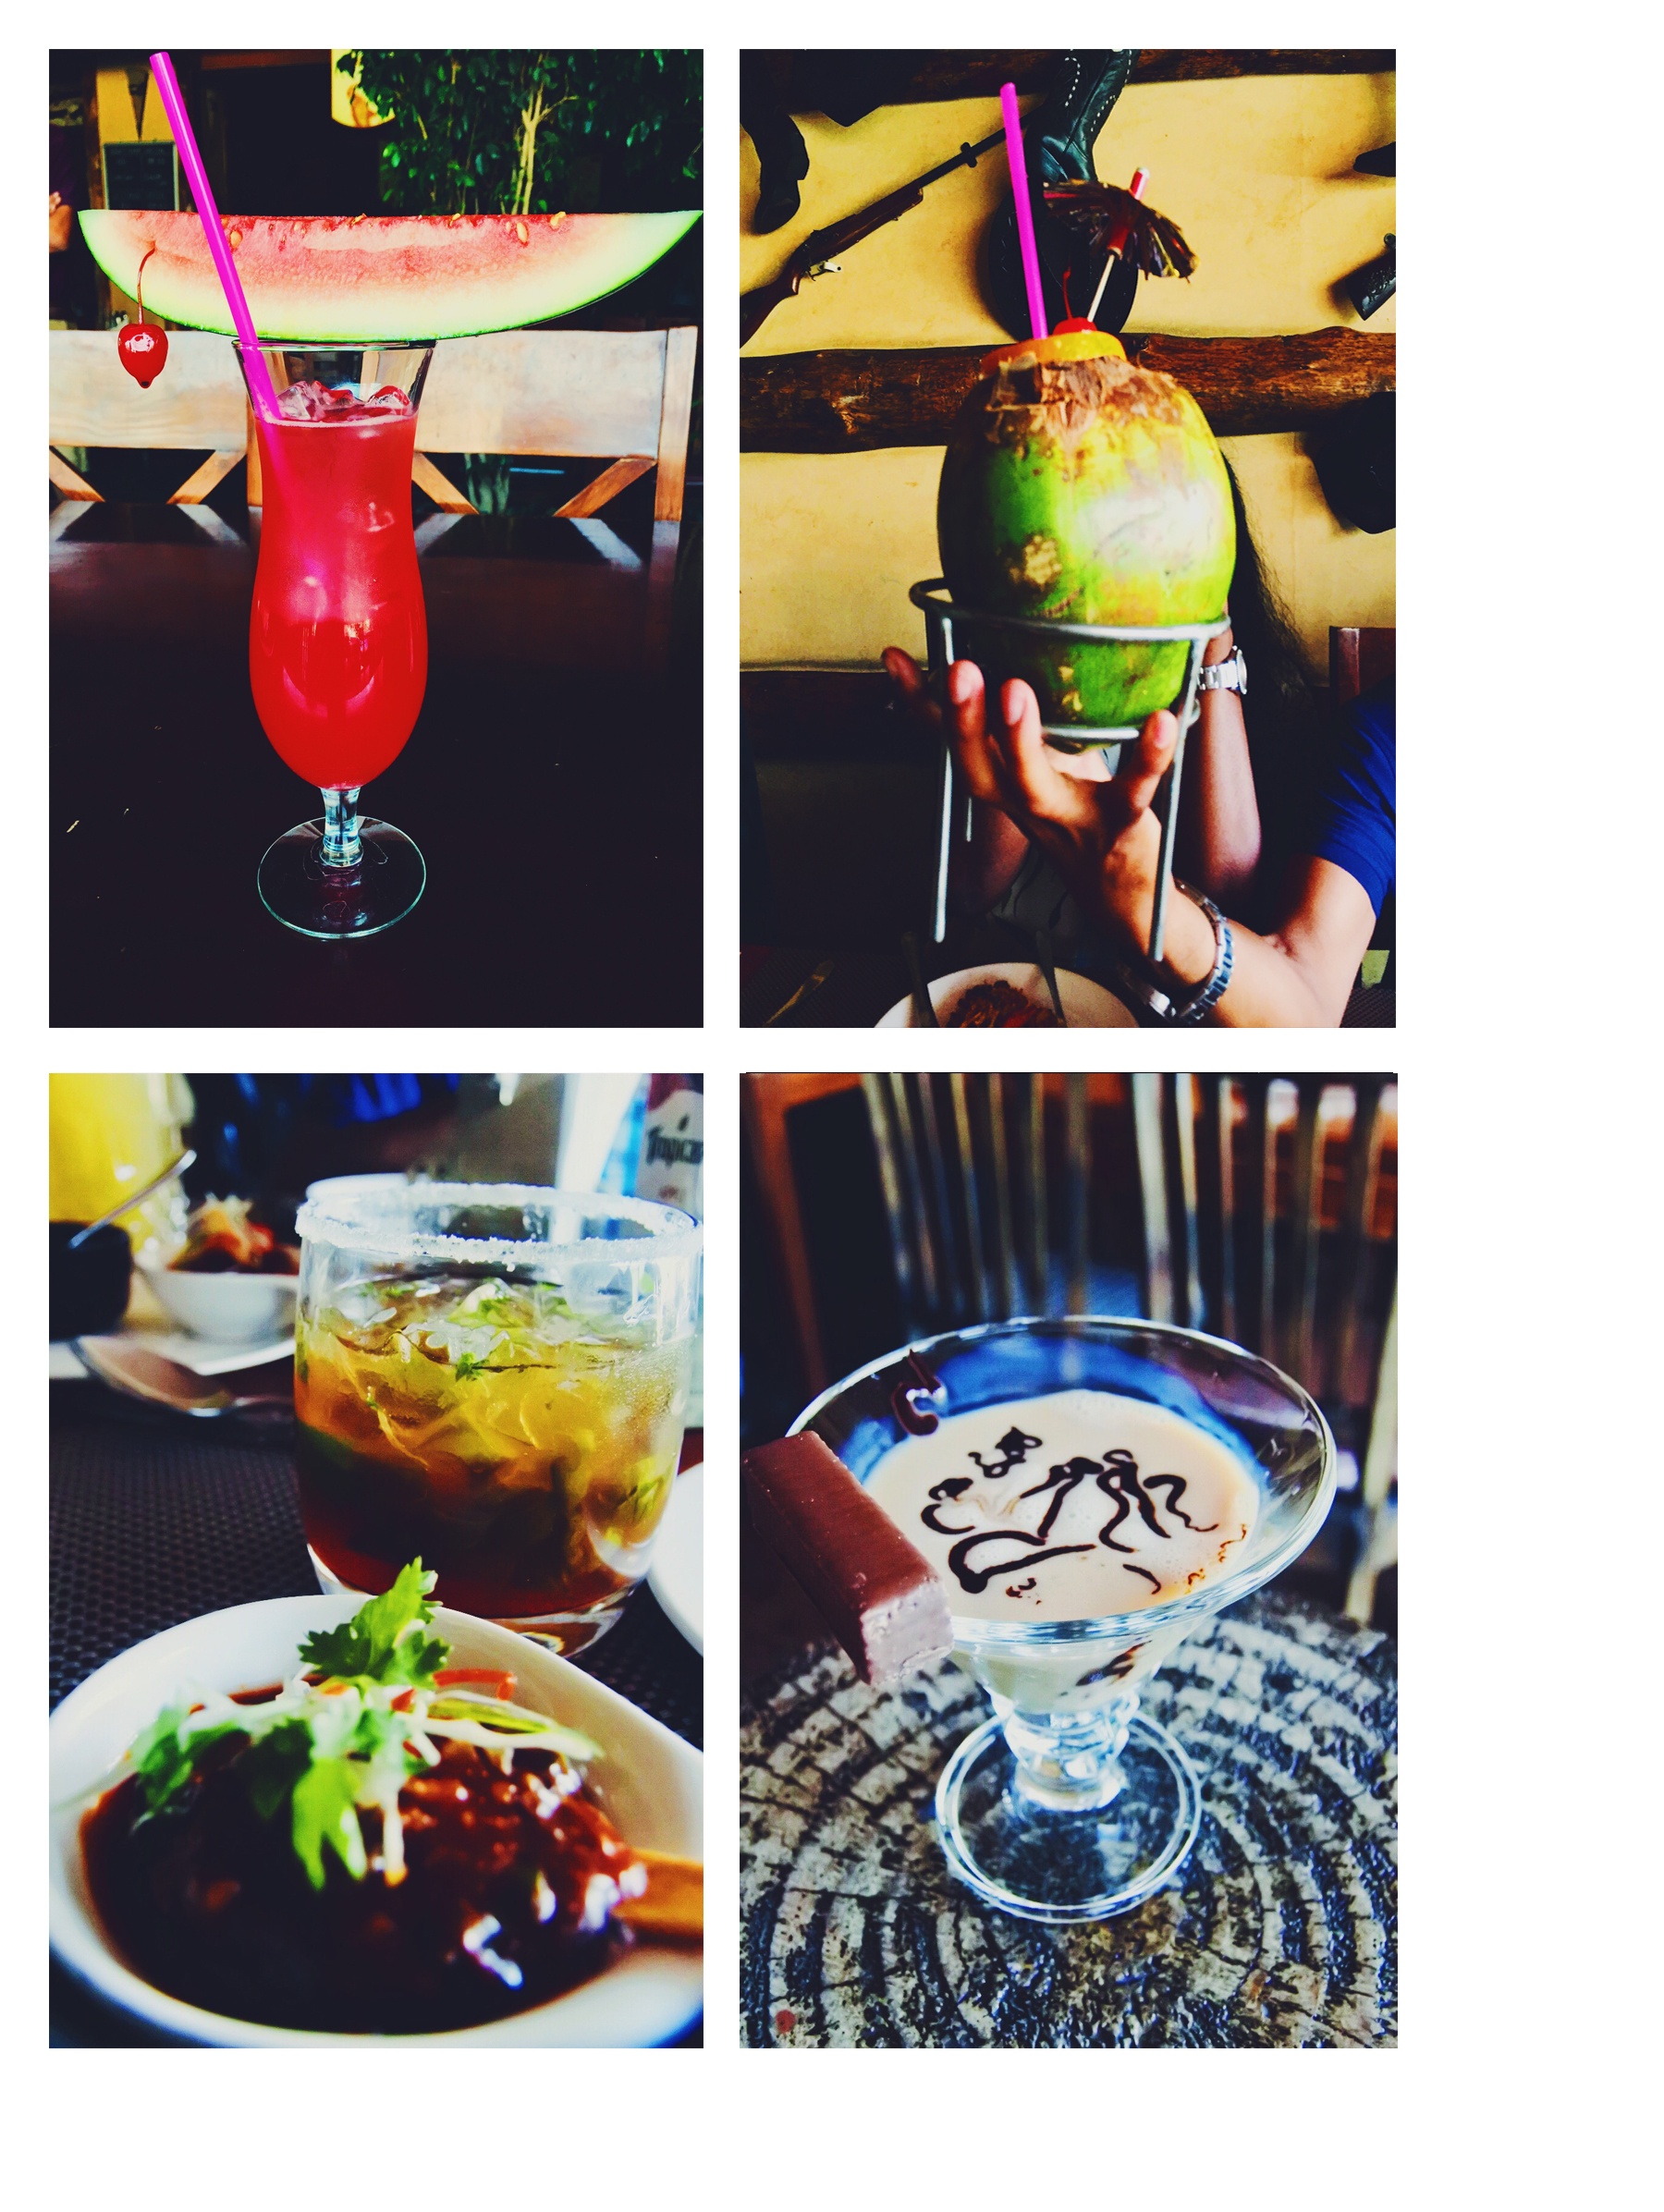 The amazing drinks we tried